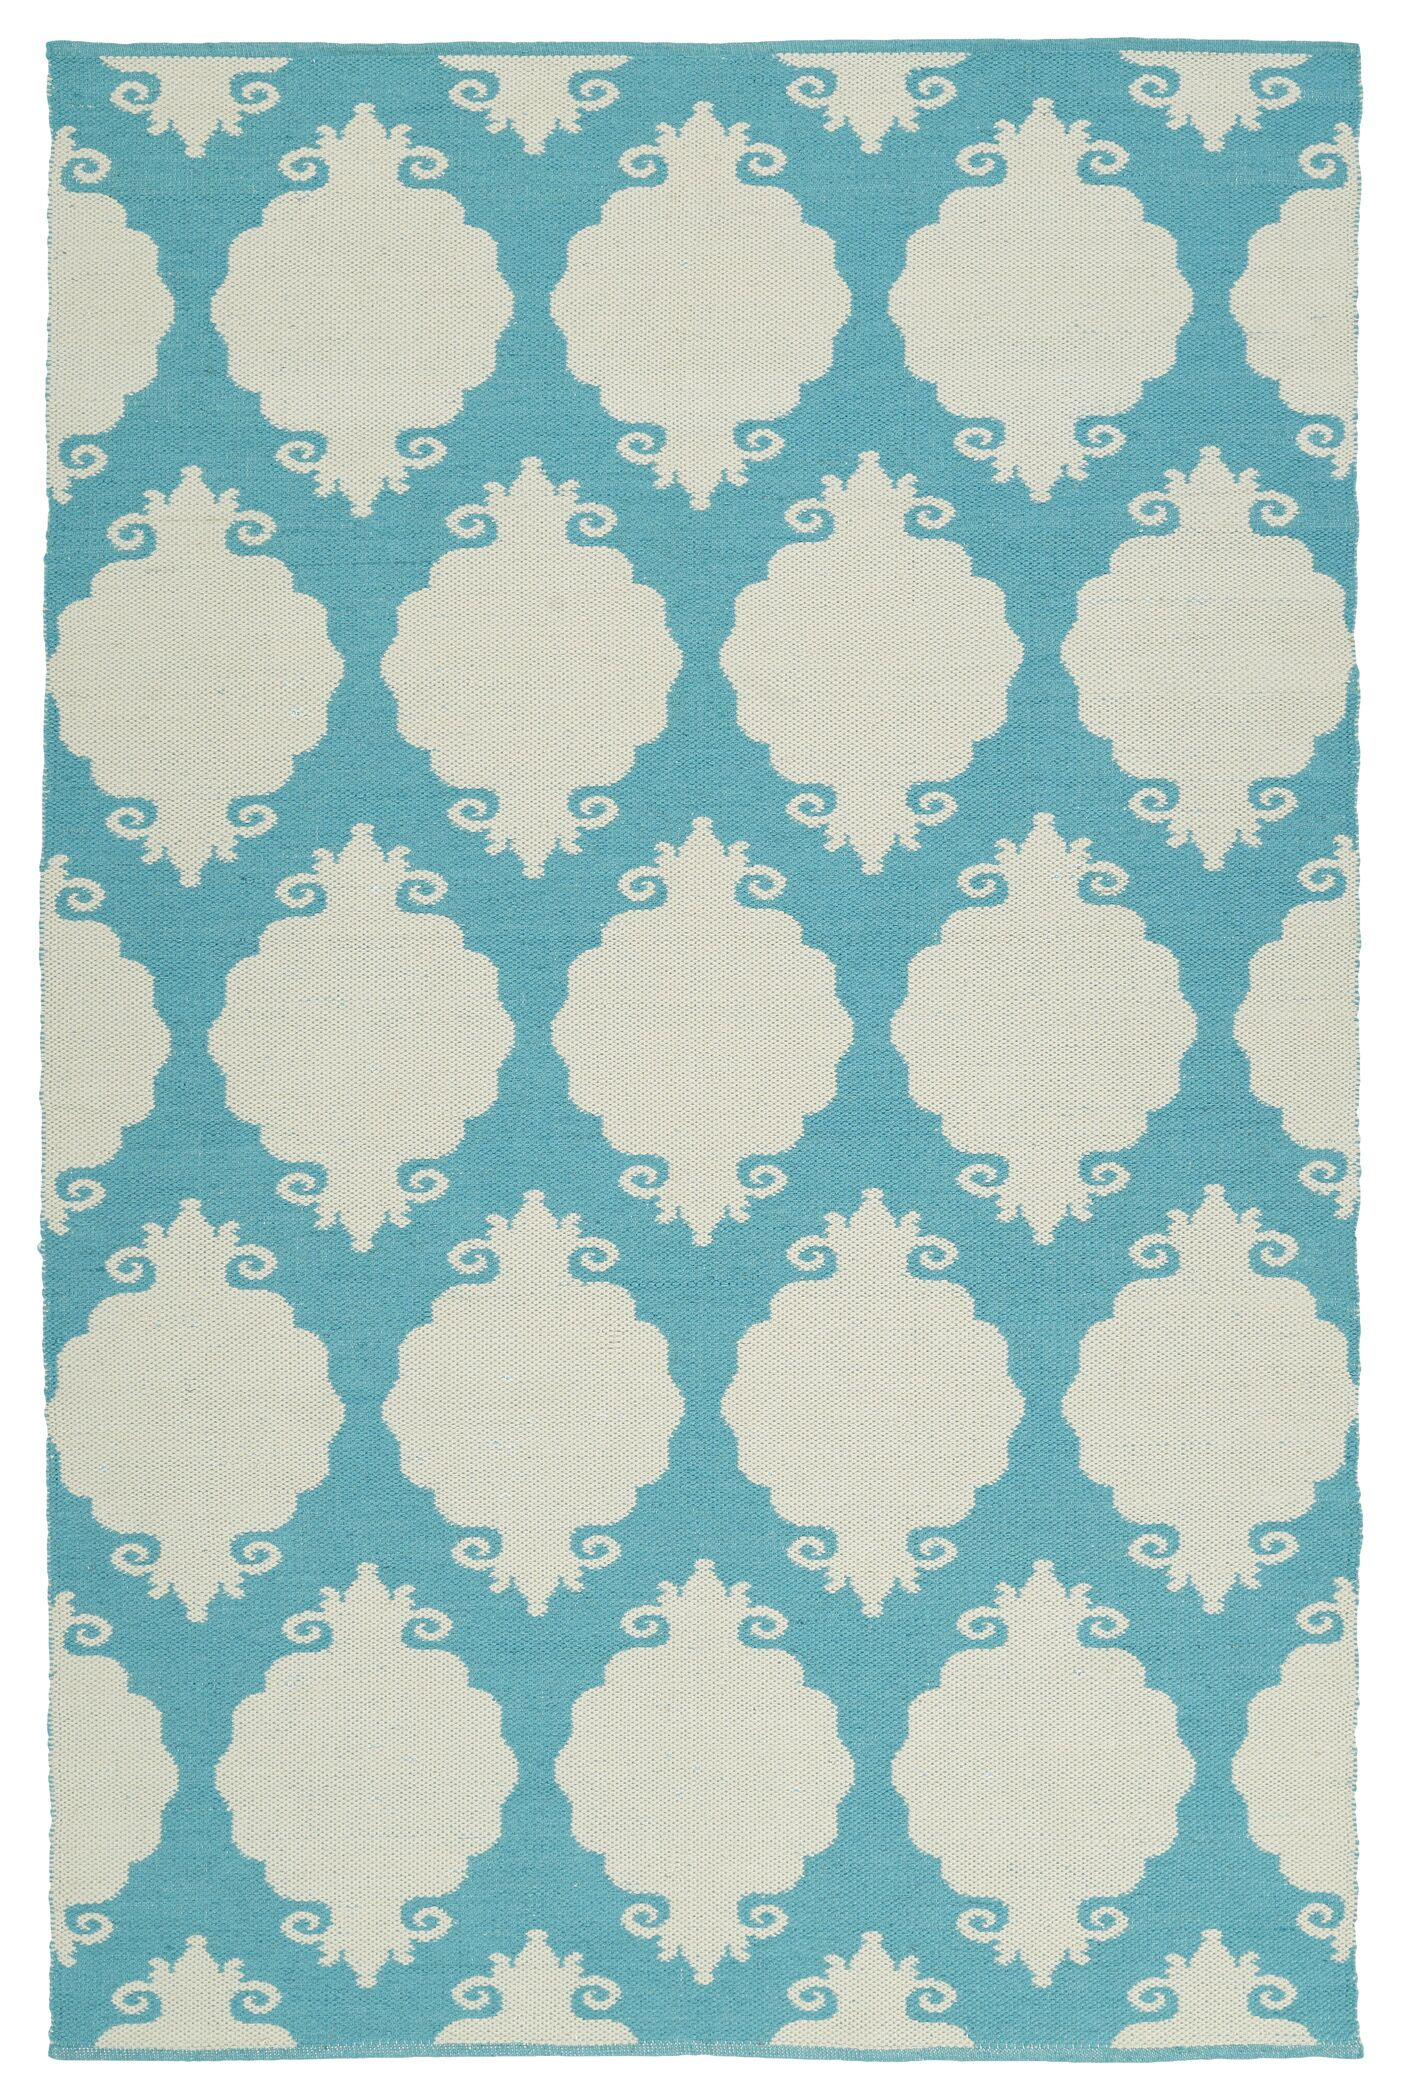 Dominic Cream/Turquoise Indoor/Outdoor Area Rug Rug Size: Rectangle 3' x 5'